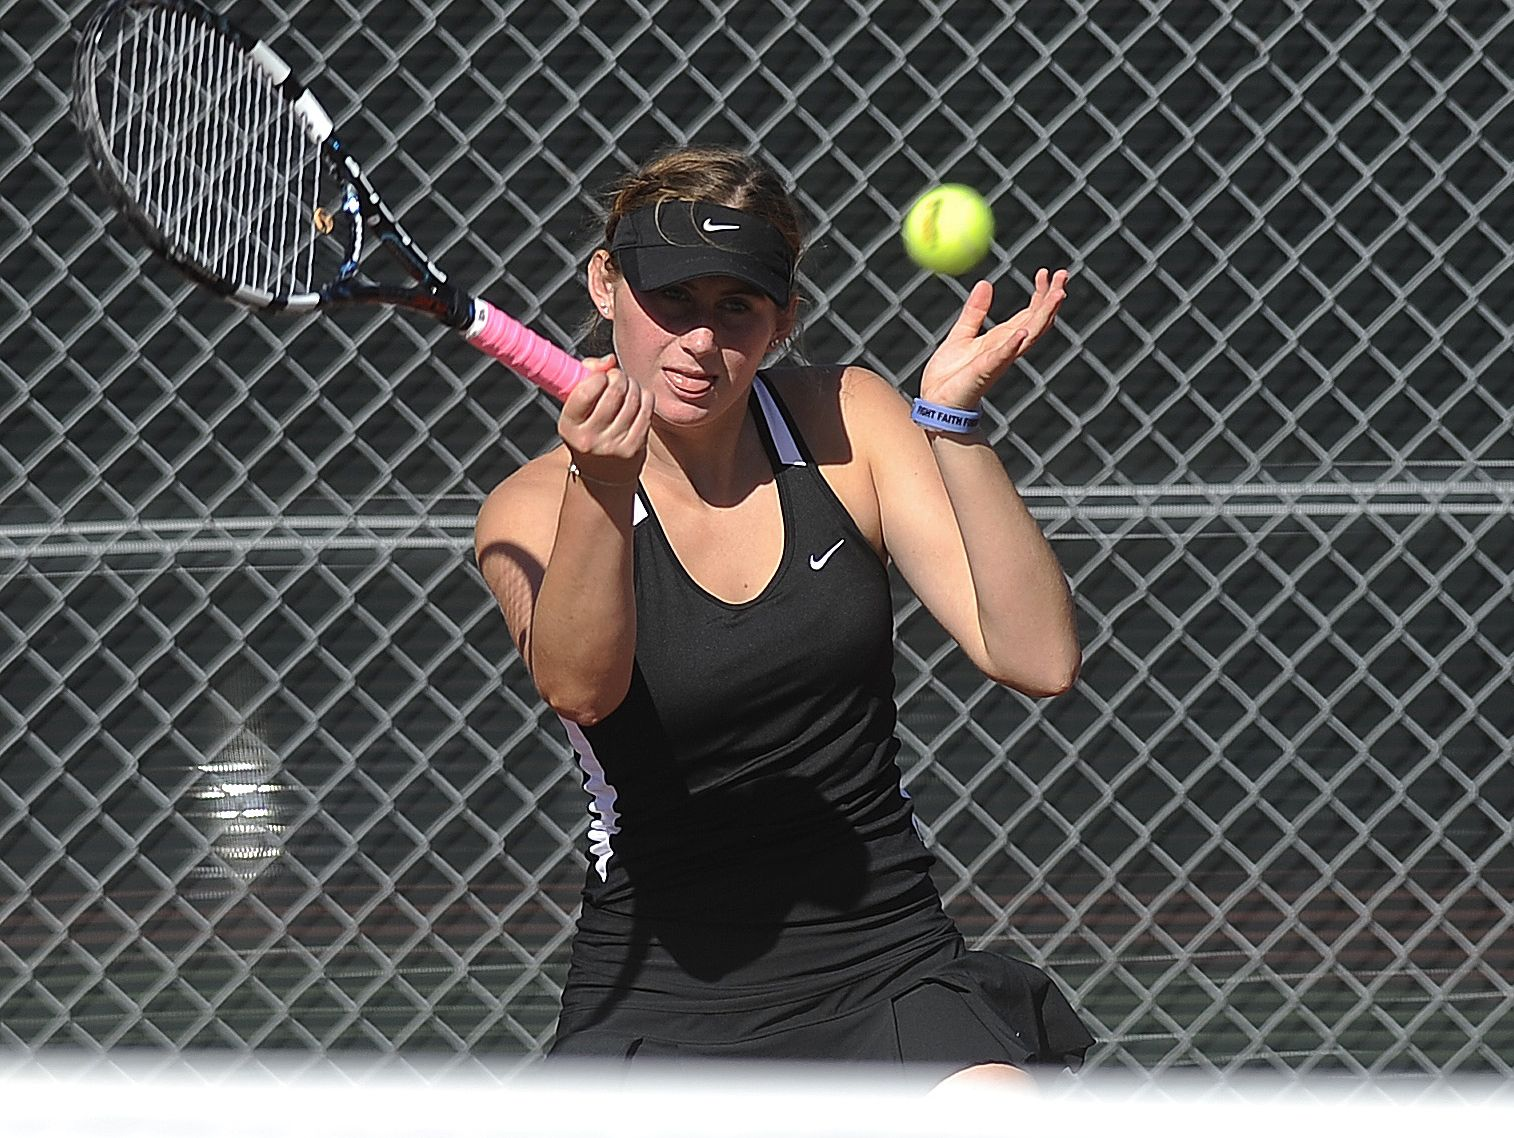 St. Thomas More's Grace Goble returns the ball to O'Gorman's Danielle Sabata and Samantha Czarnecki during the doubles championship finals of the SD high school girls state tennis tournament at McKennan Park in Sioux Falls, SD; Saturday, Oct. 10, 2015.